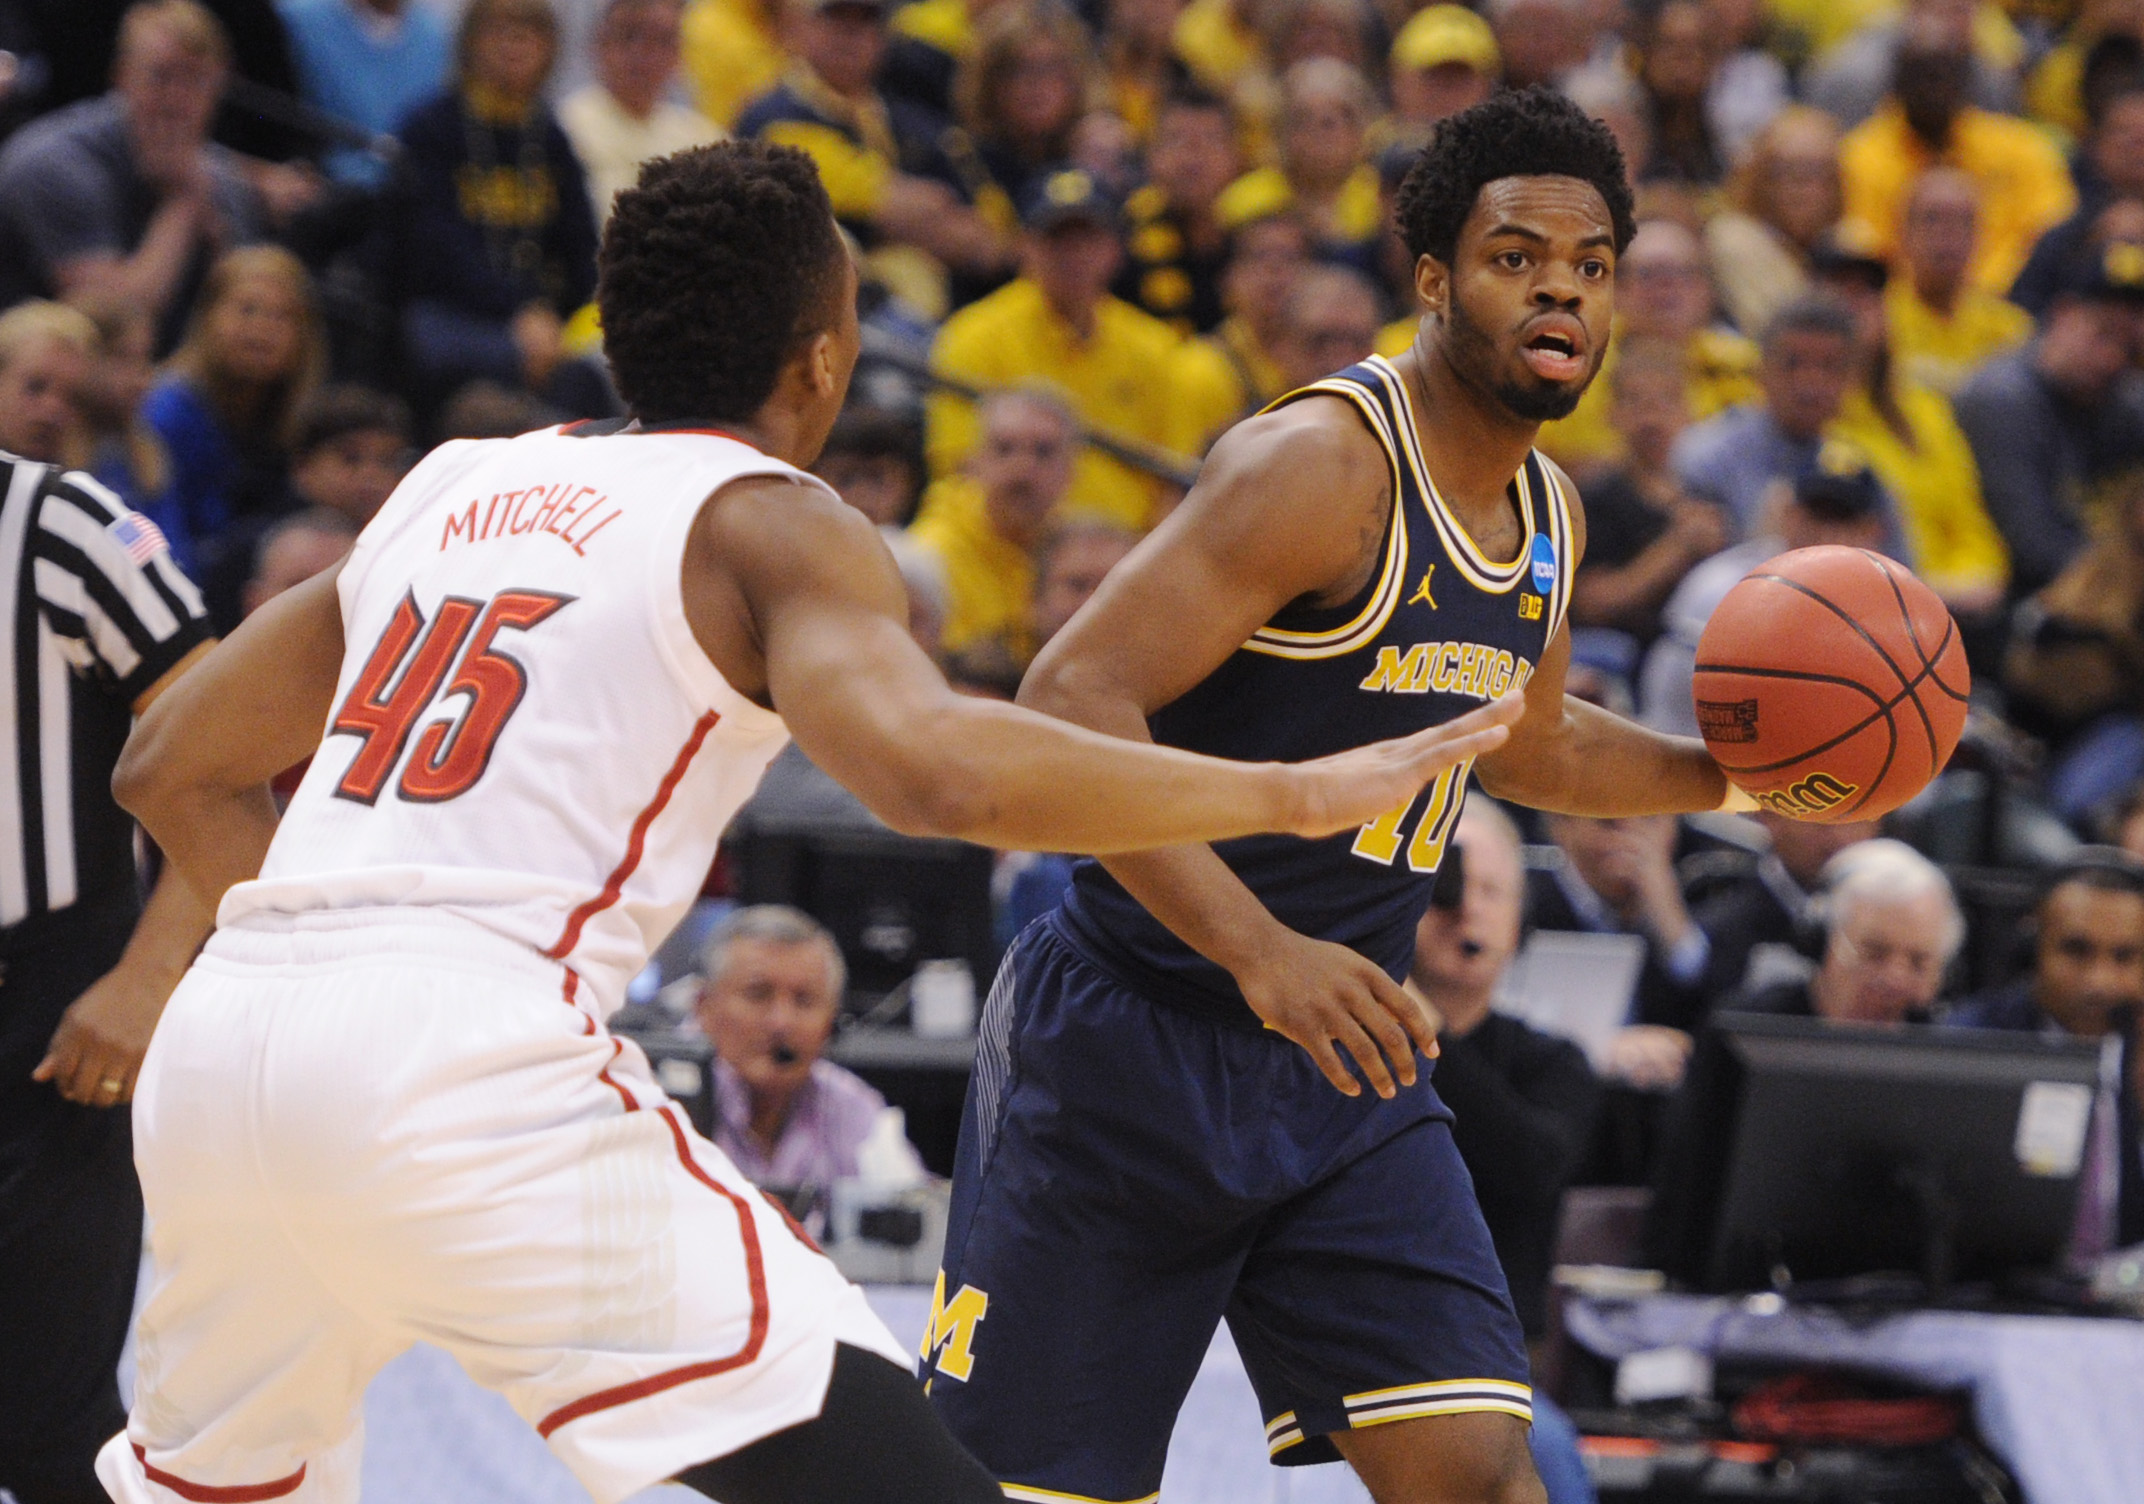 Oregon Ducks don't let Michigan Wolverines' feel-good story continue